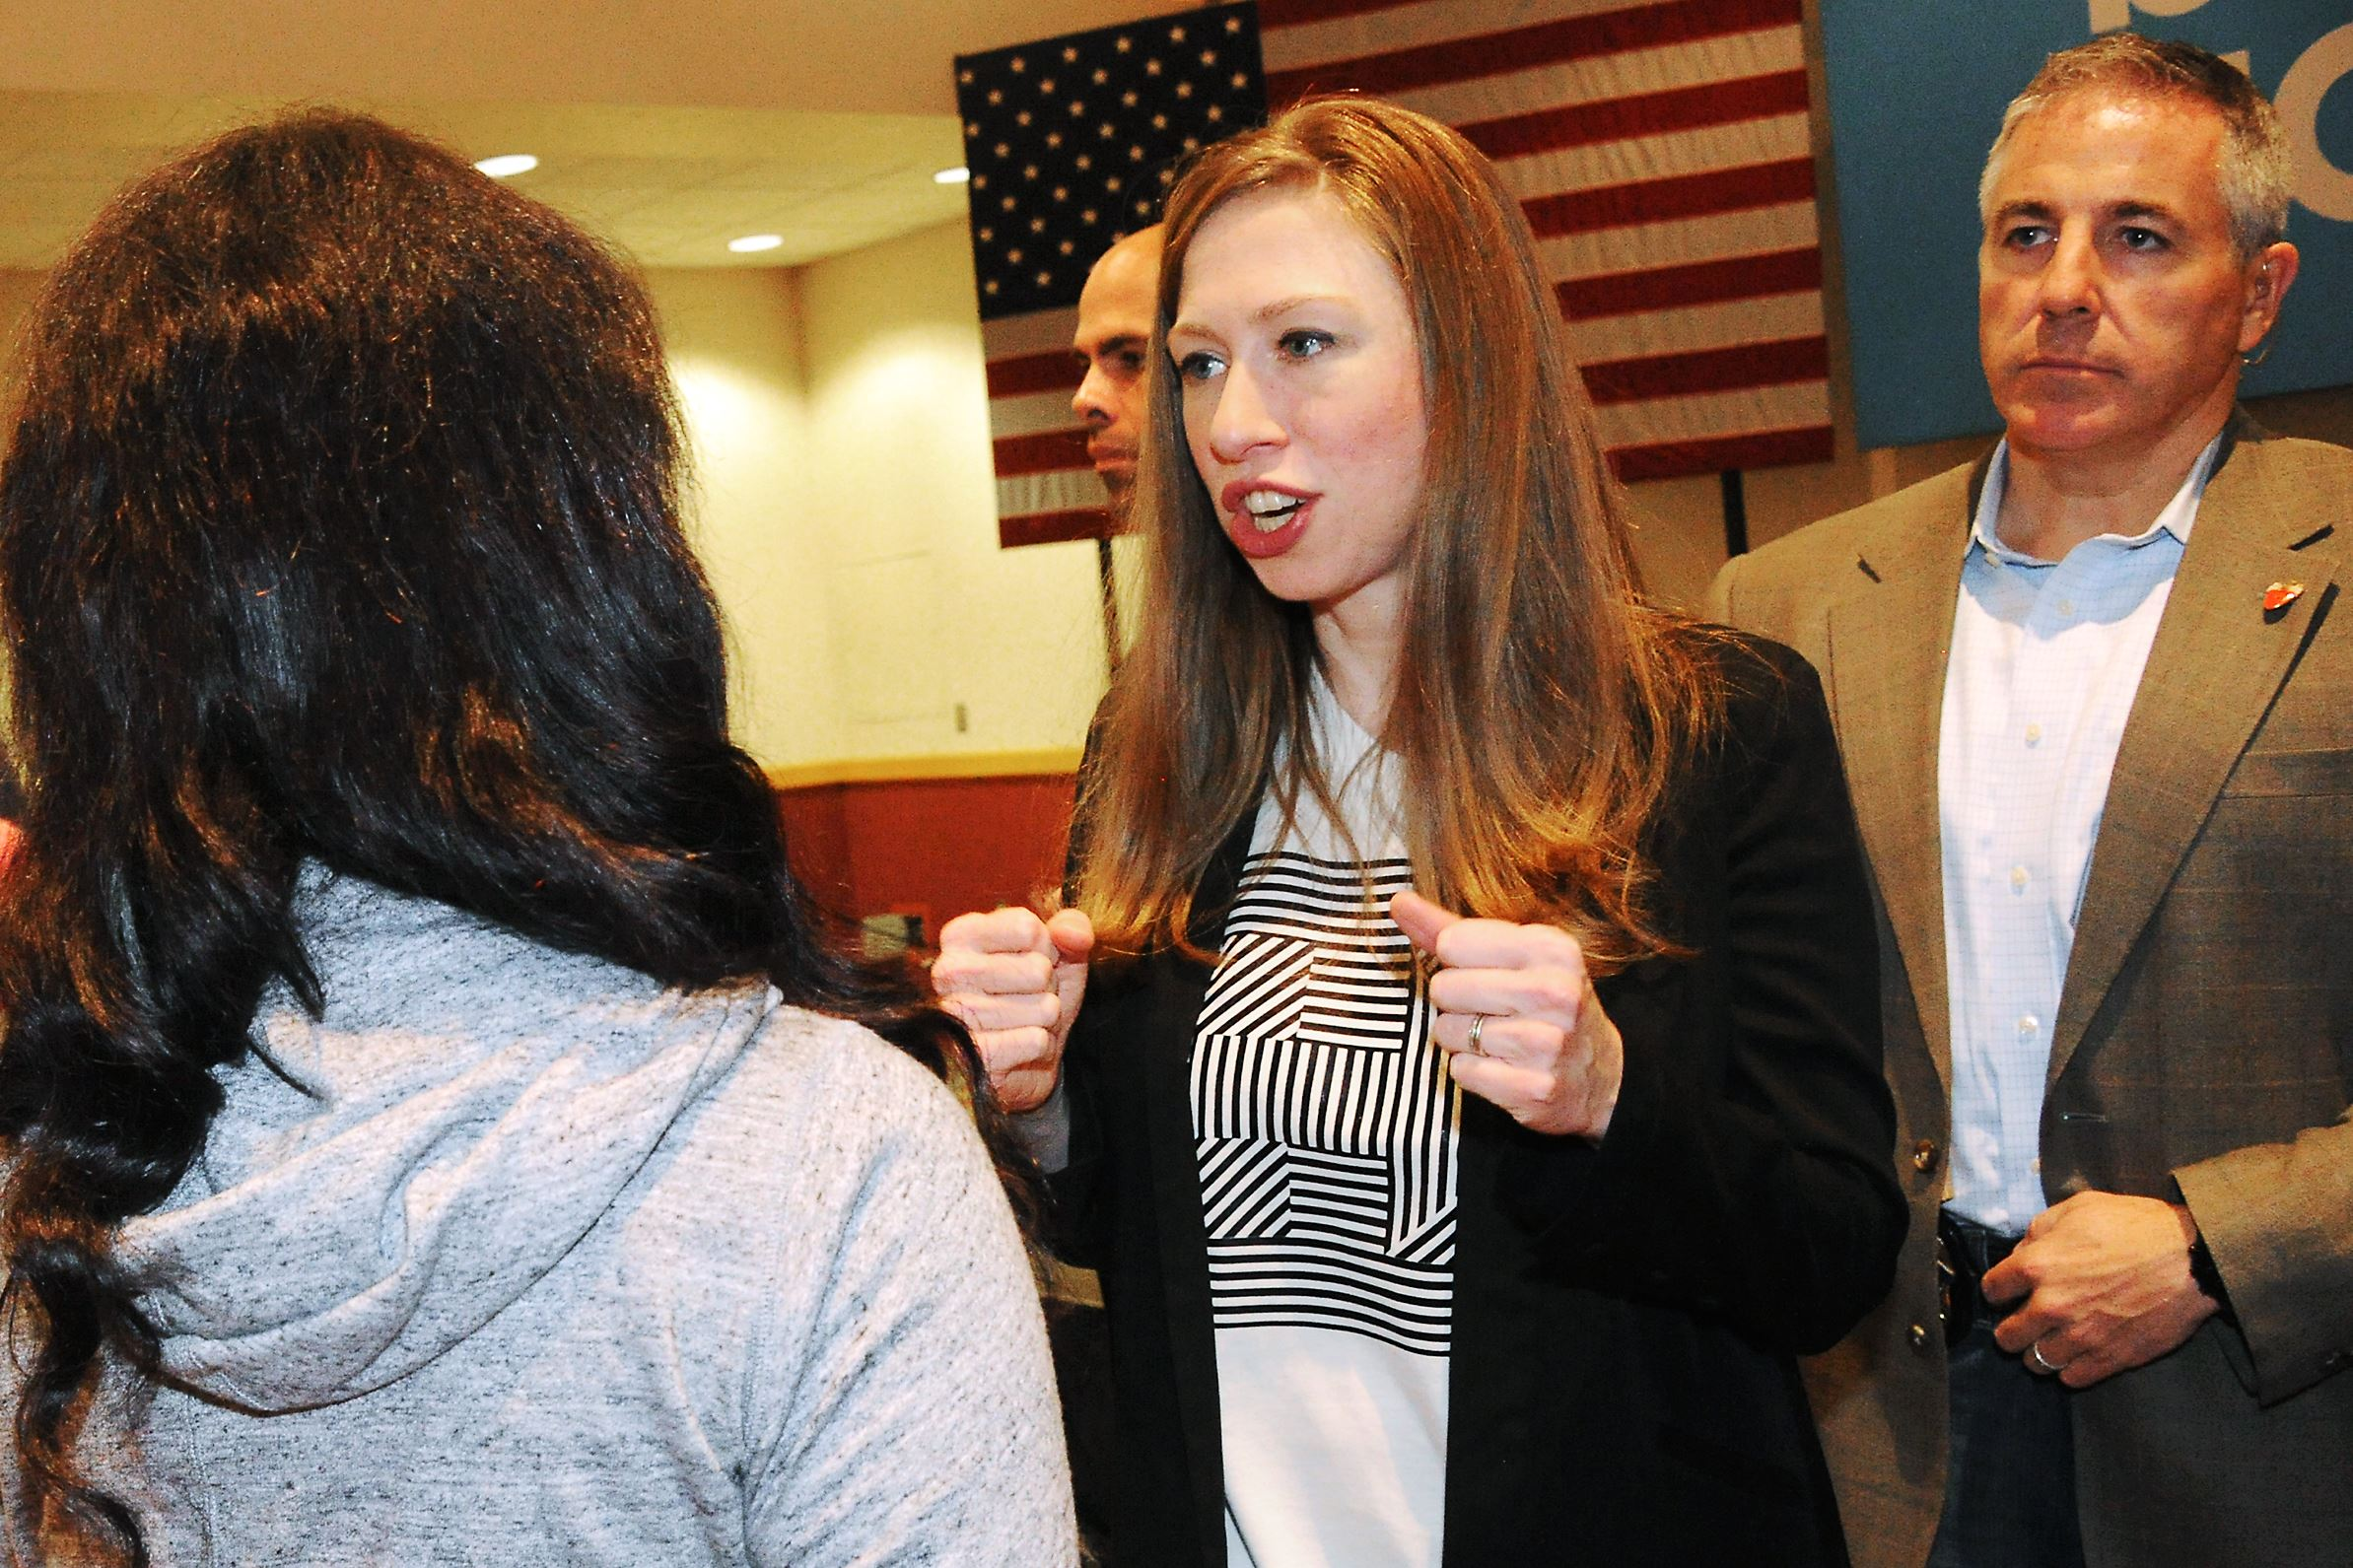 20160924lf-Clinton03 Chelsea Clinton speaks to a supporter of her mother during a campaign stop at the University of Pittsburgh-Johnstown in September.